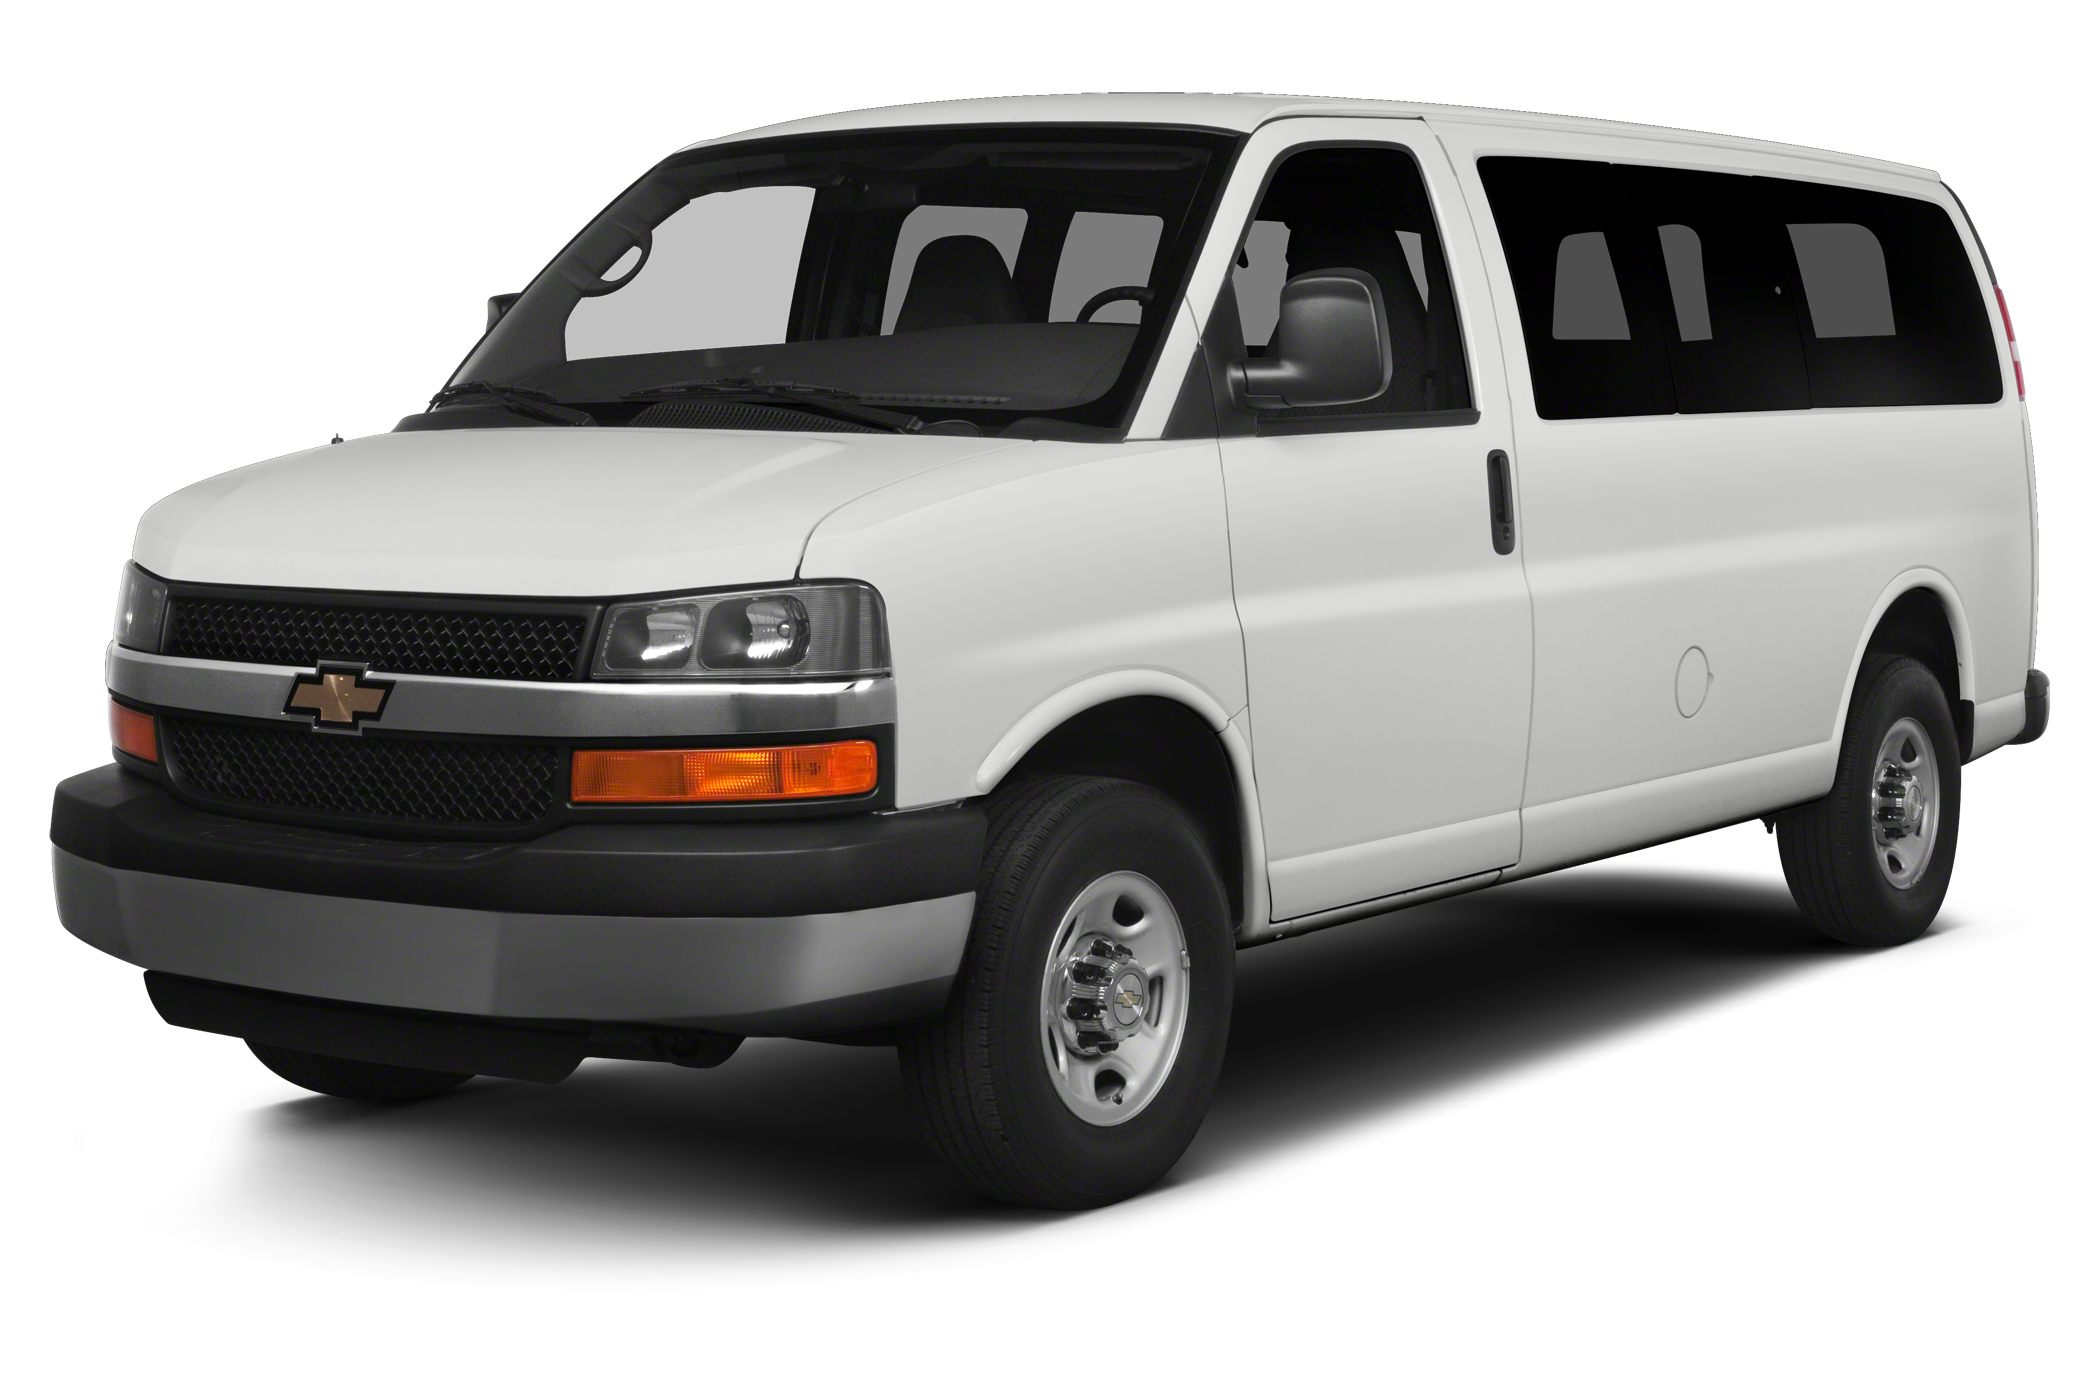 2014 Chevrolet Express 3500 LT Passenger Van for sale in Lumberton for $24,867 with 15,073 miles